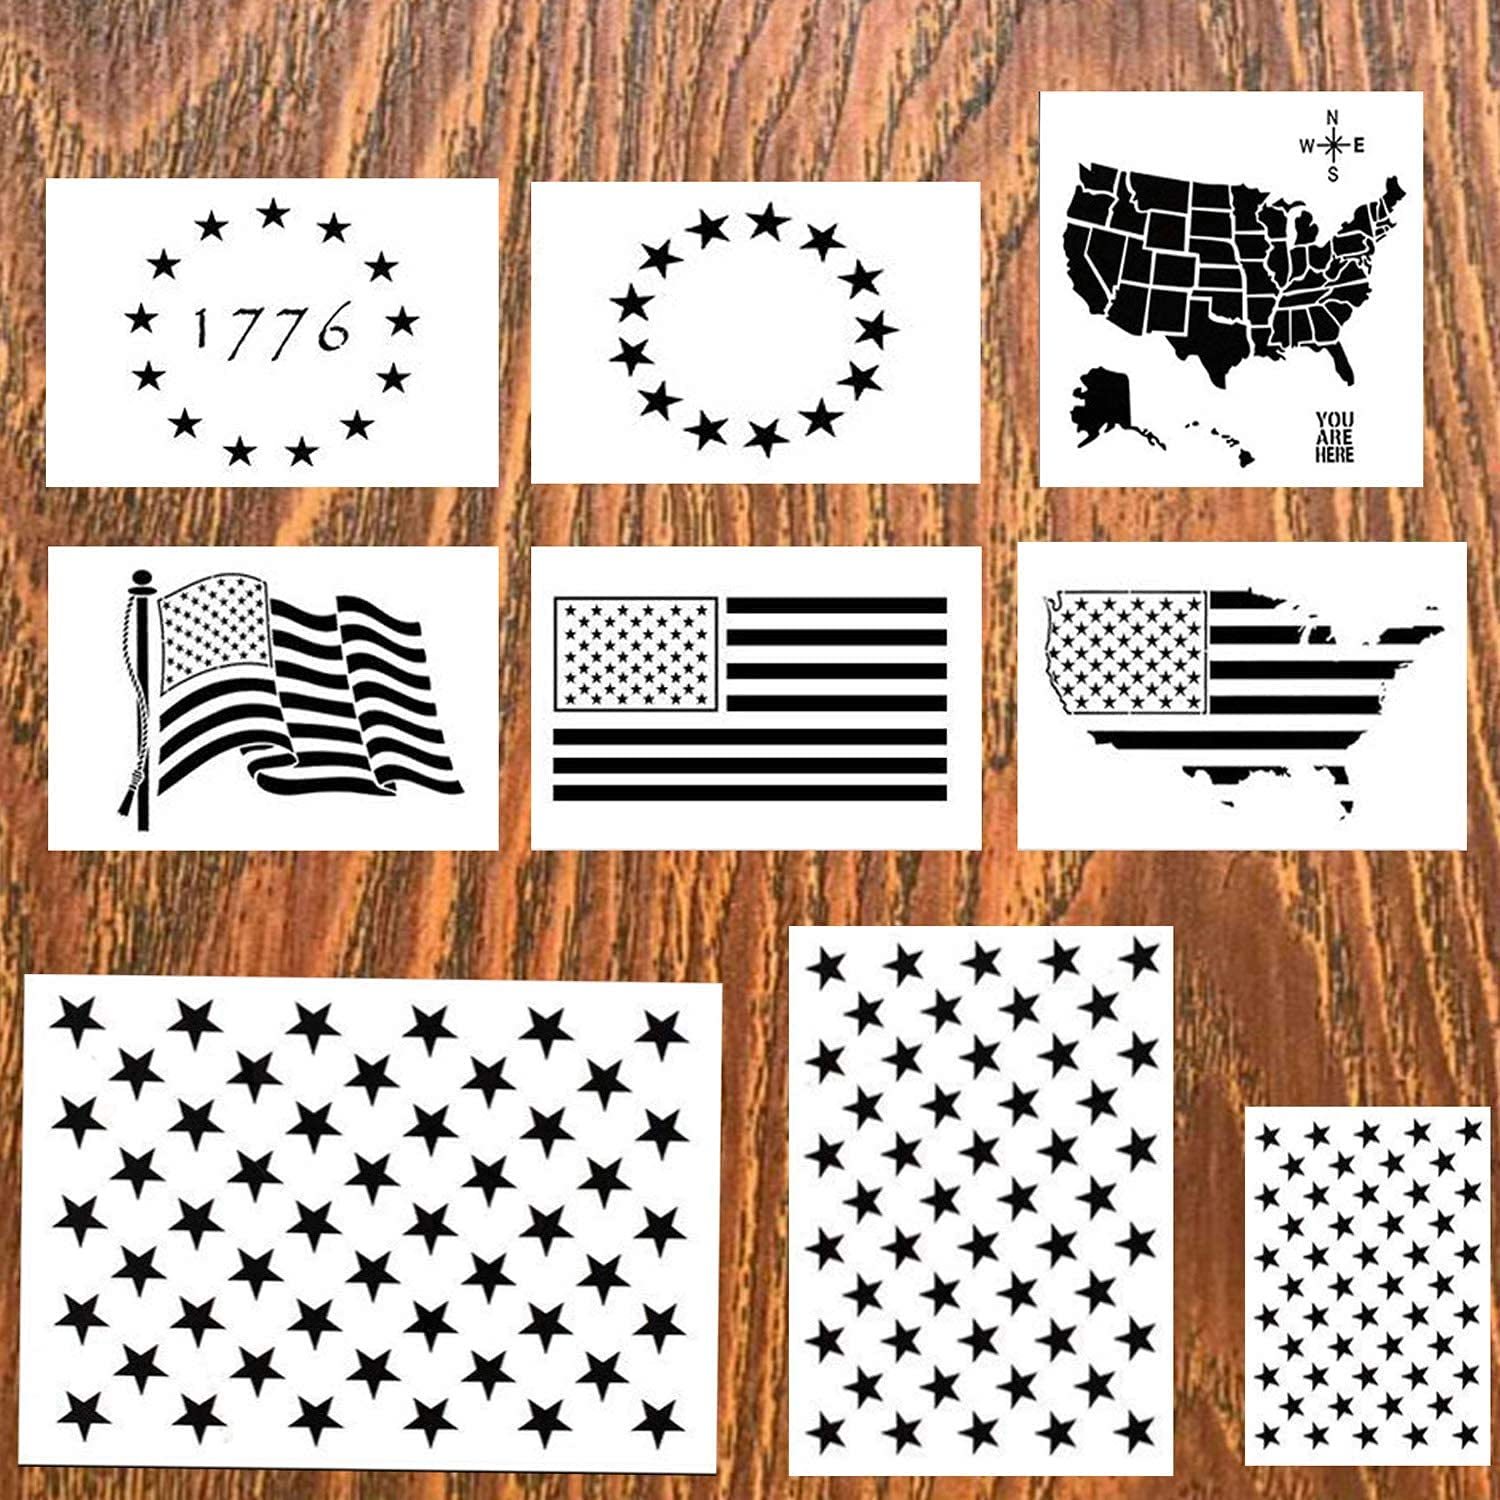 DmHirmg 9pcs American Flag Stencil Plastic Stencil Template for Planner/Notebook/Diary/Scrapbook/Graffiti/Card, DIY Drawing Painting Craft Projects